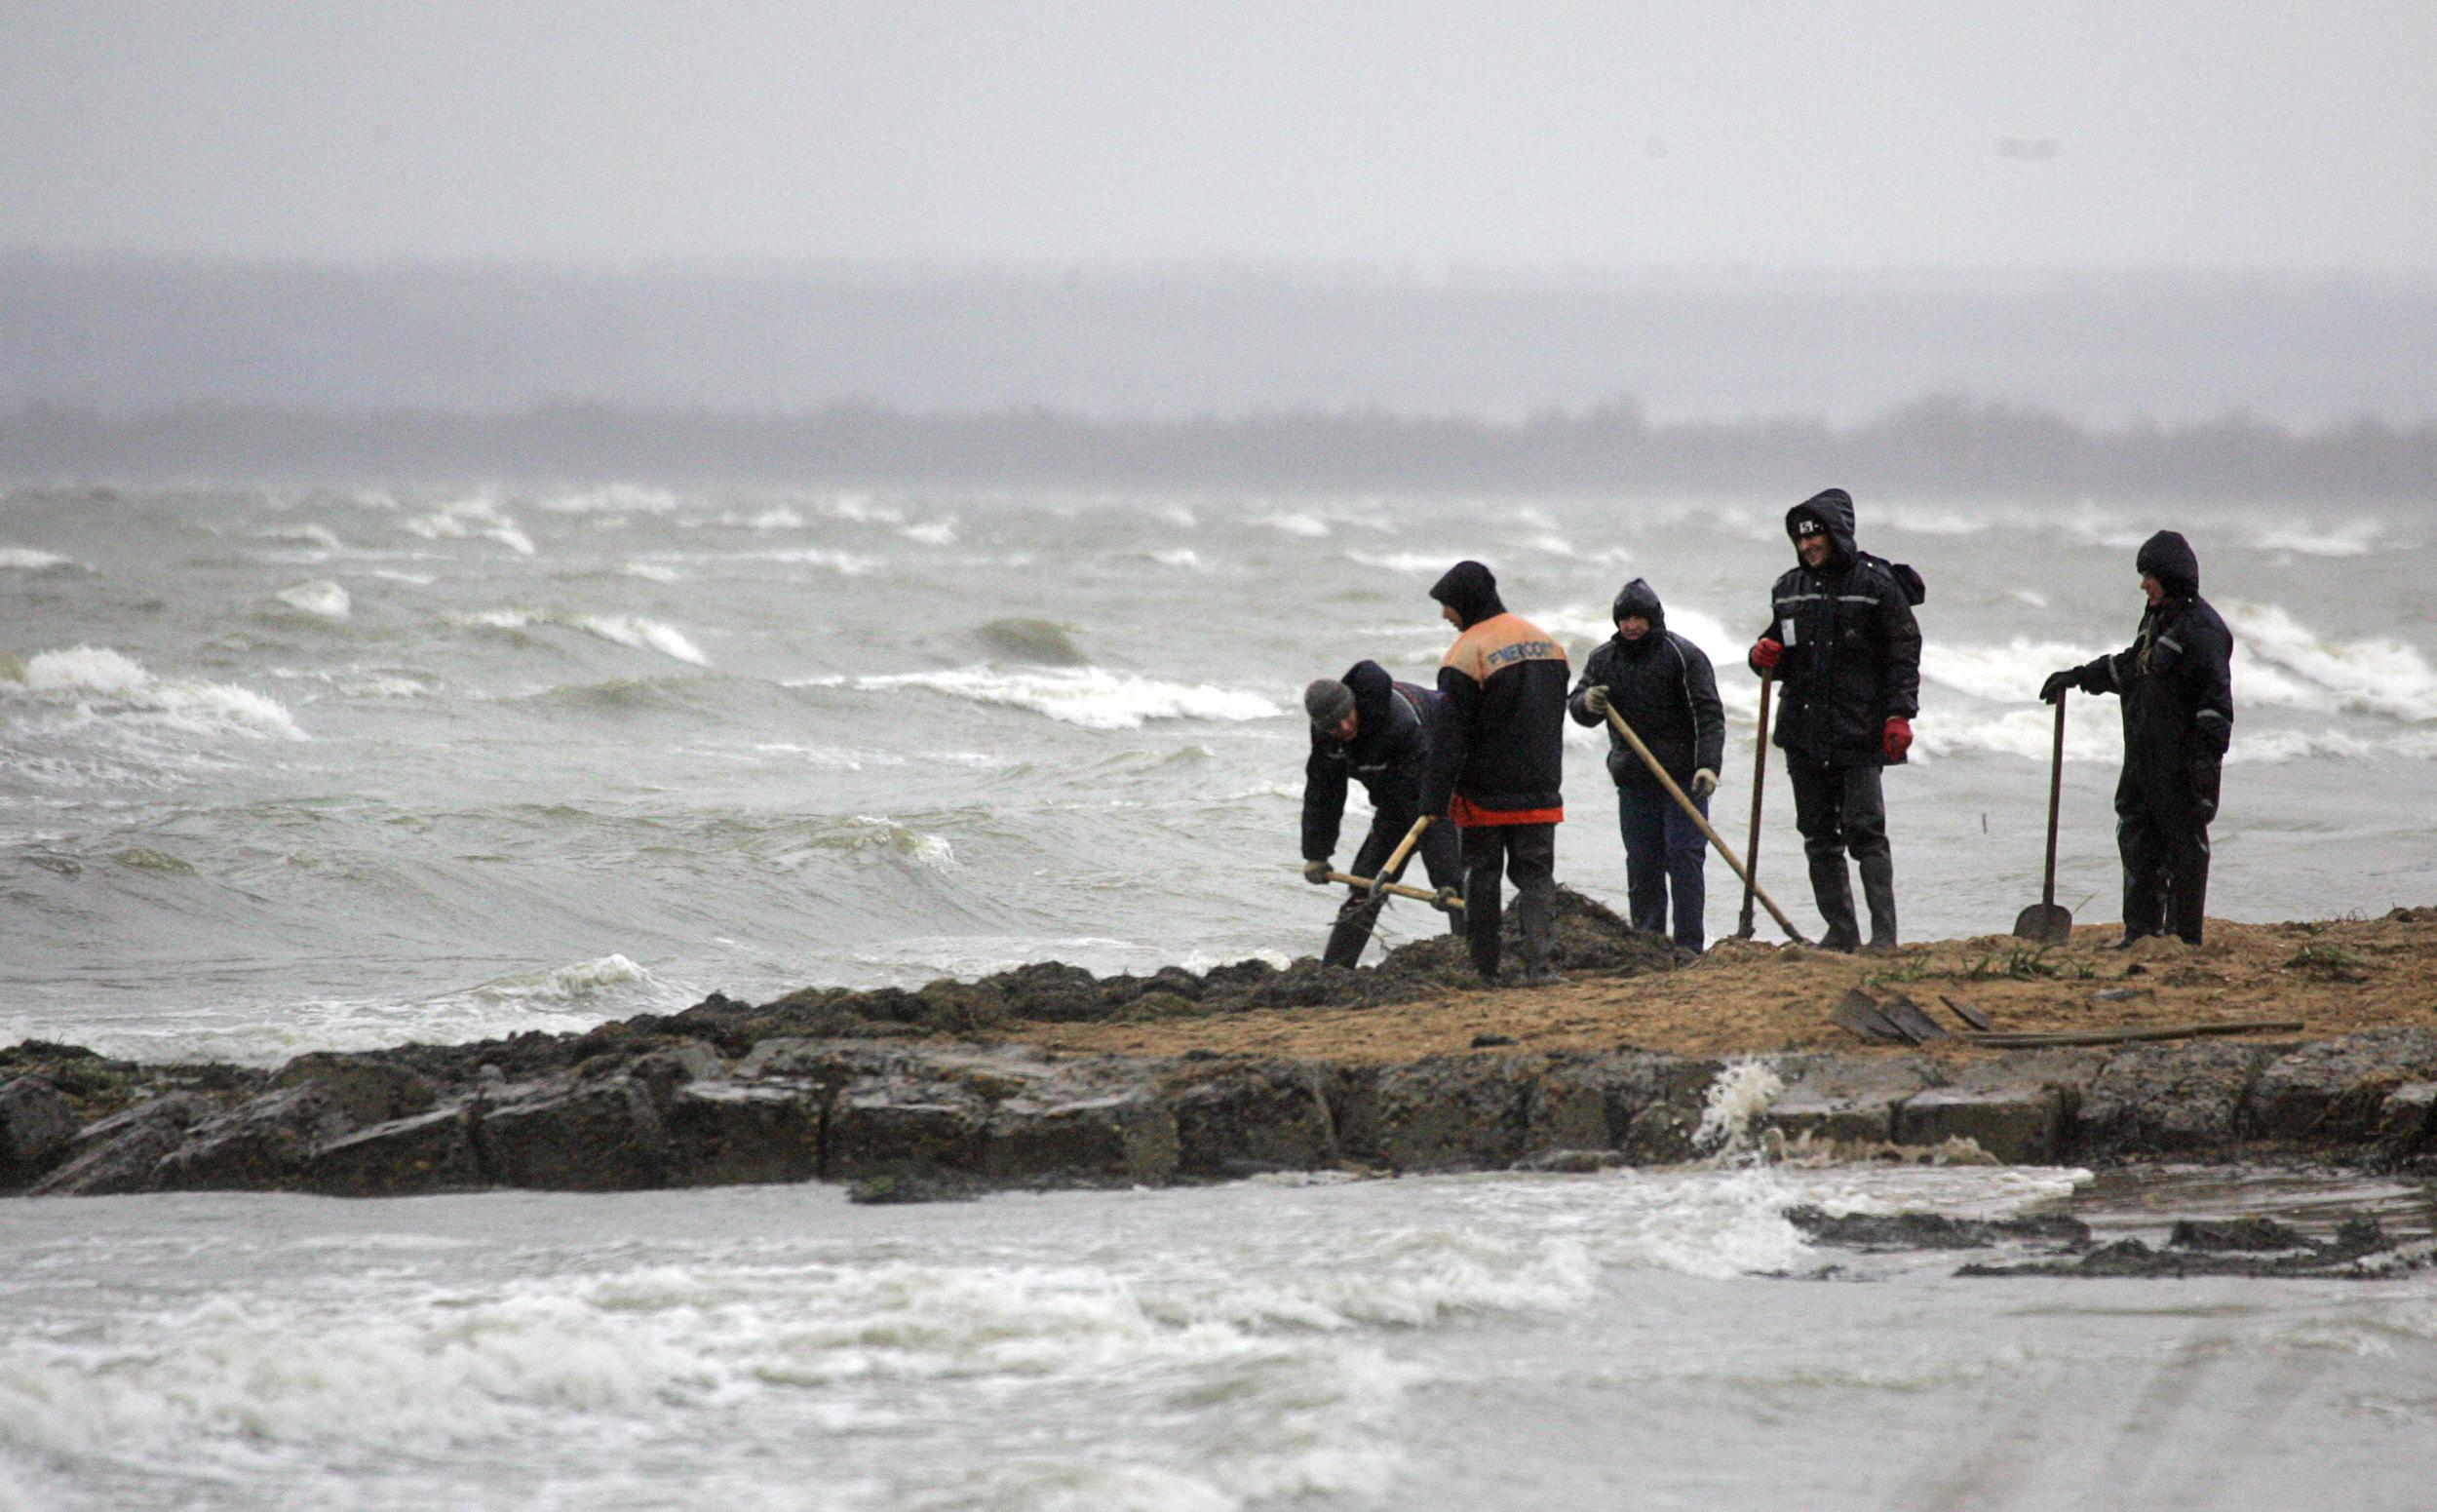 Russia battles to contain Black Sea oil spill